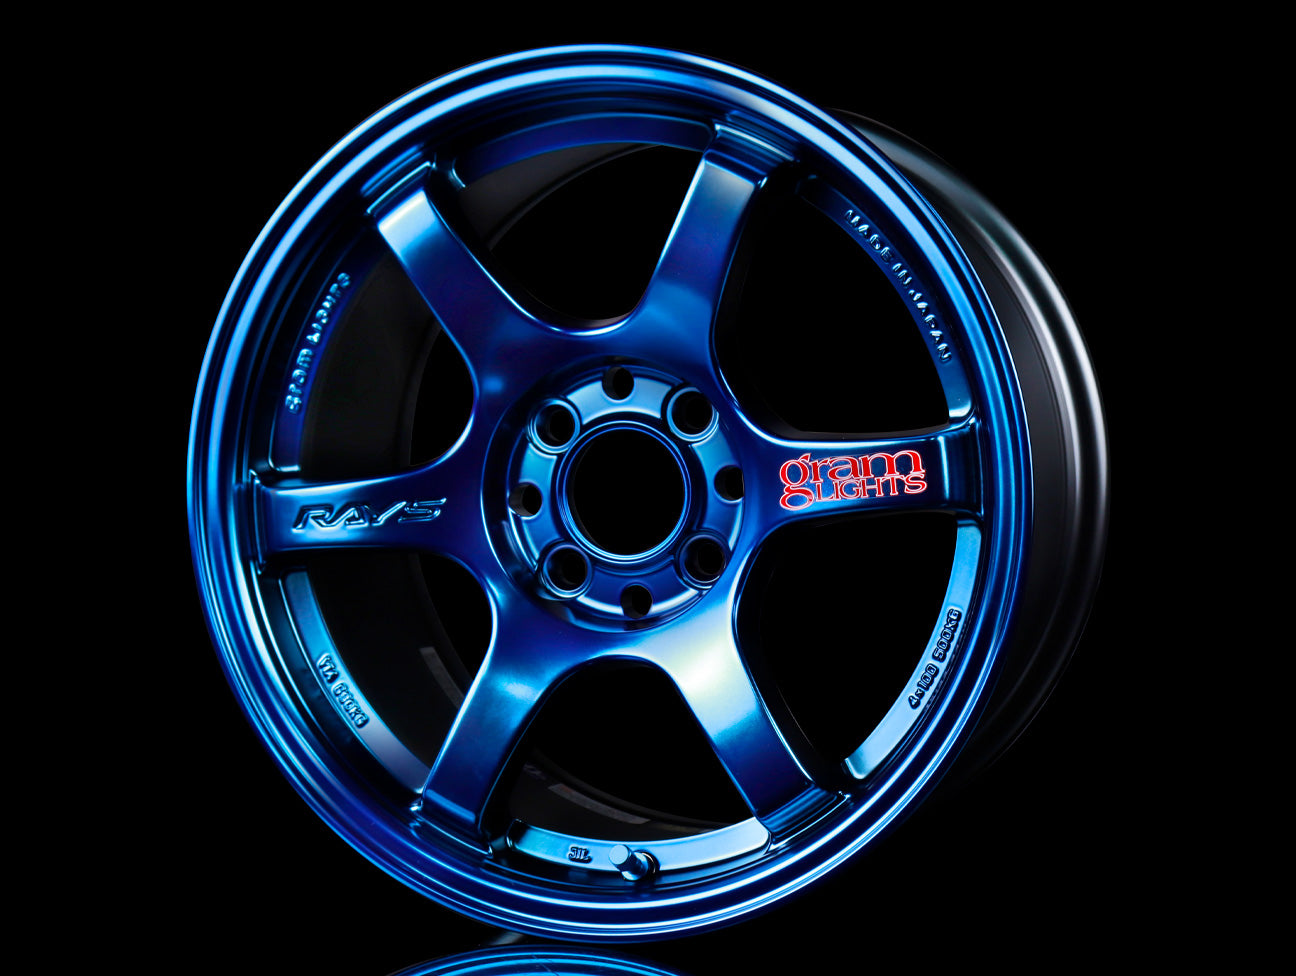 Rays Gram Lights 57DR Wheels - Spatta Blue 15x8 / 4x100 / +35